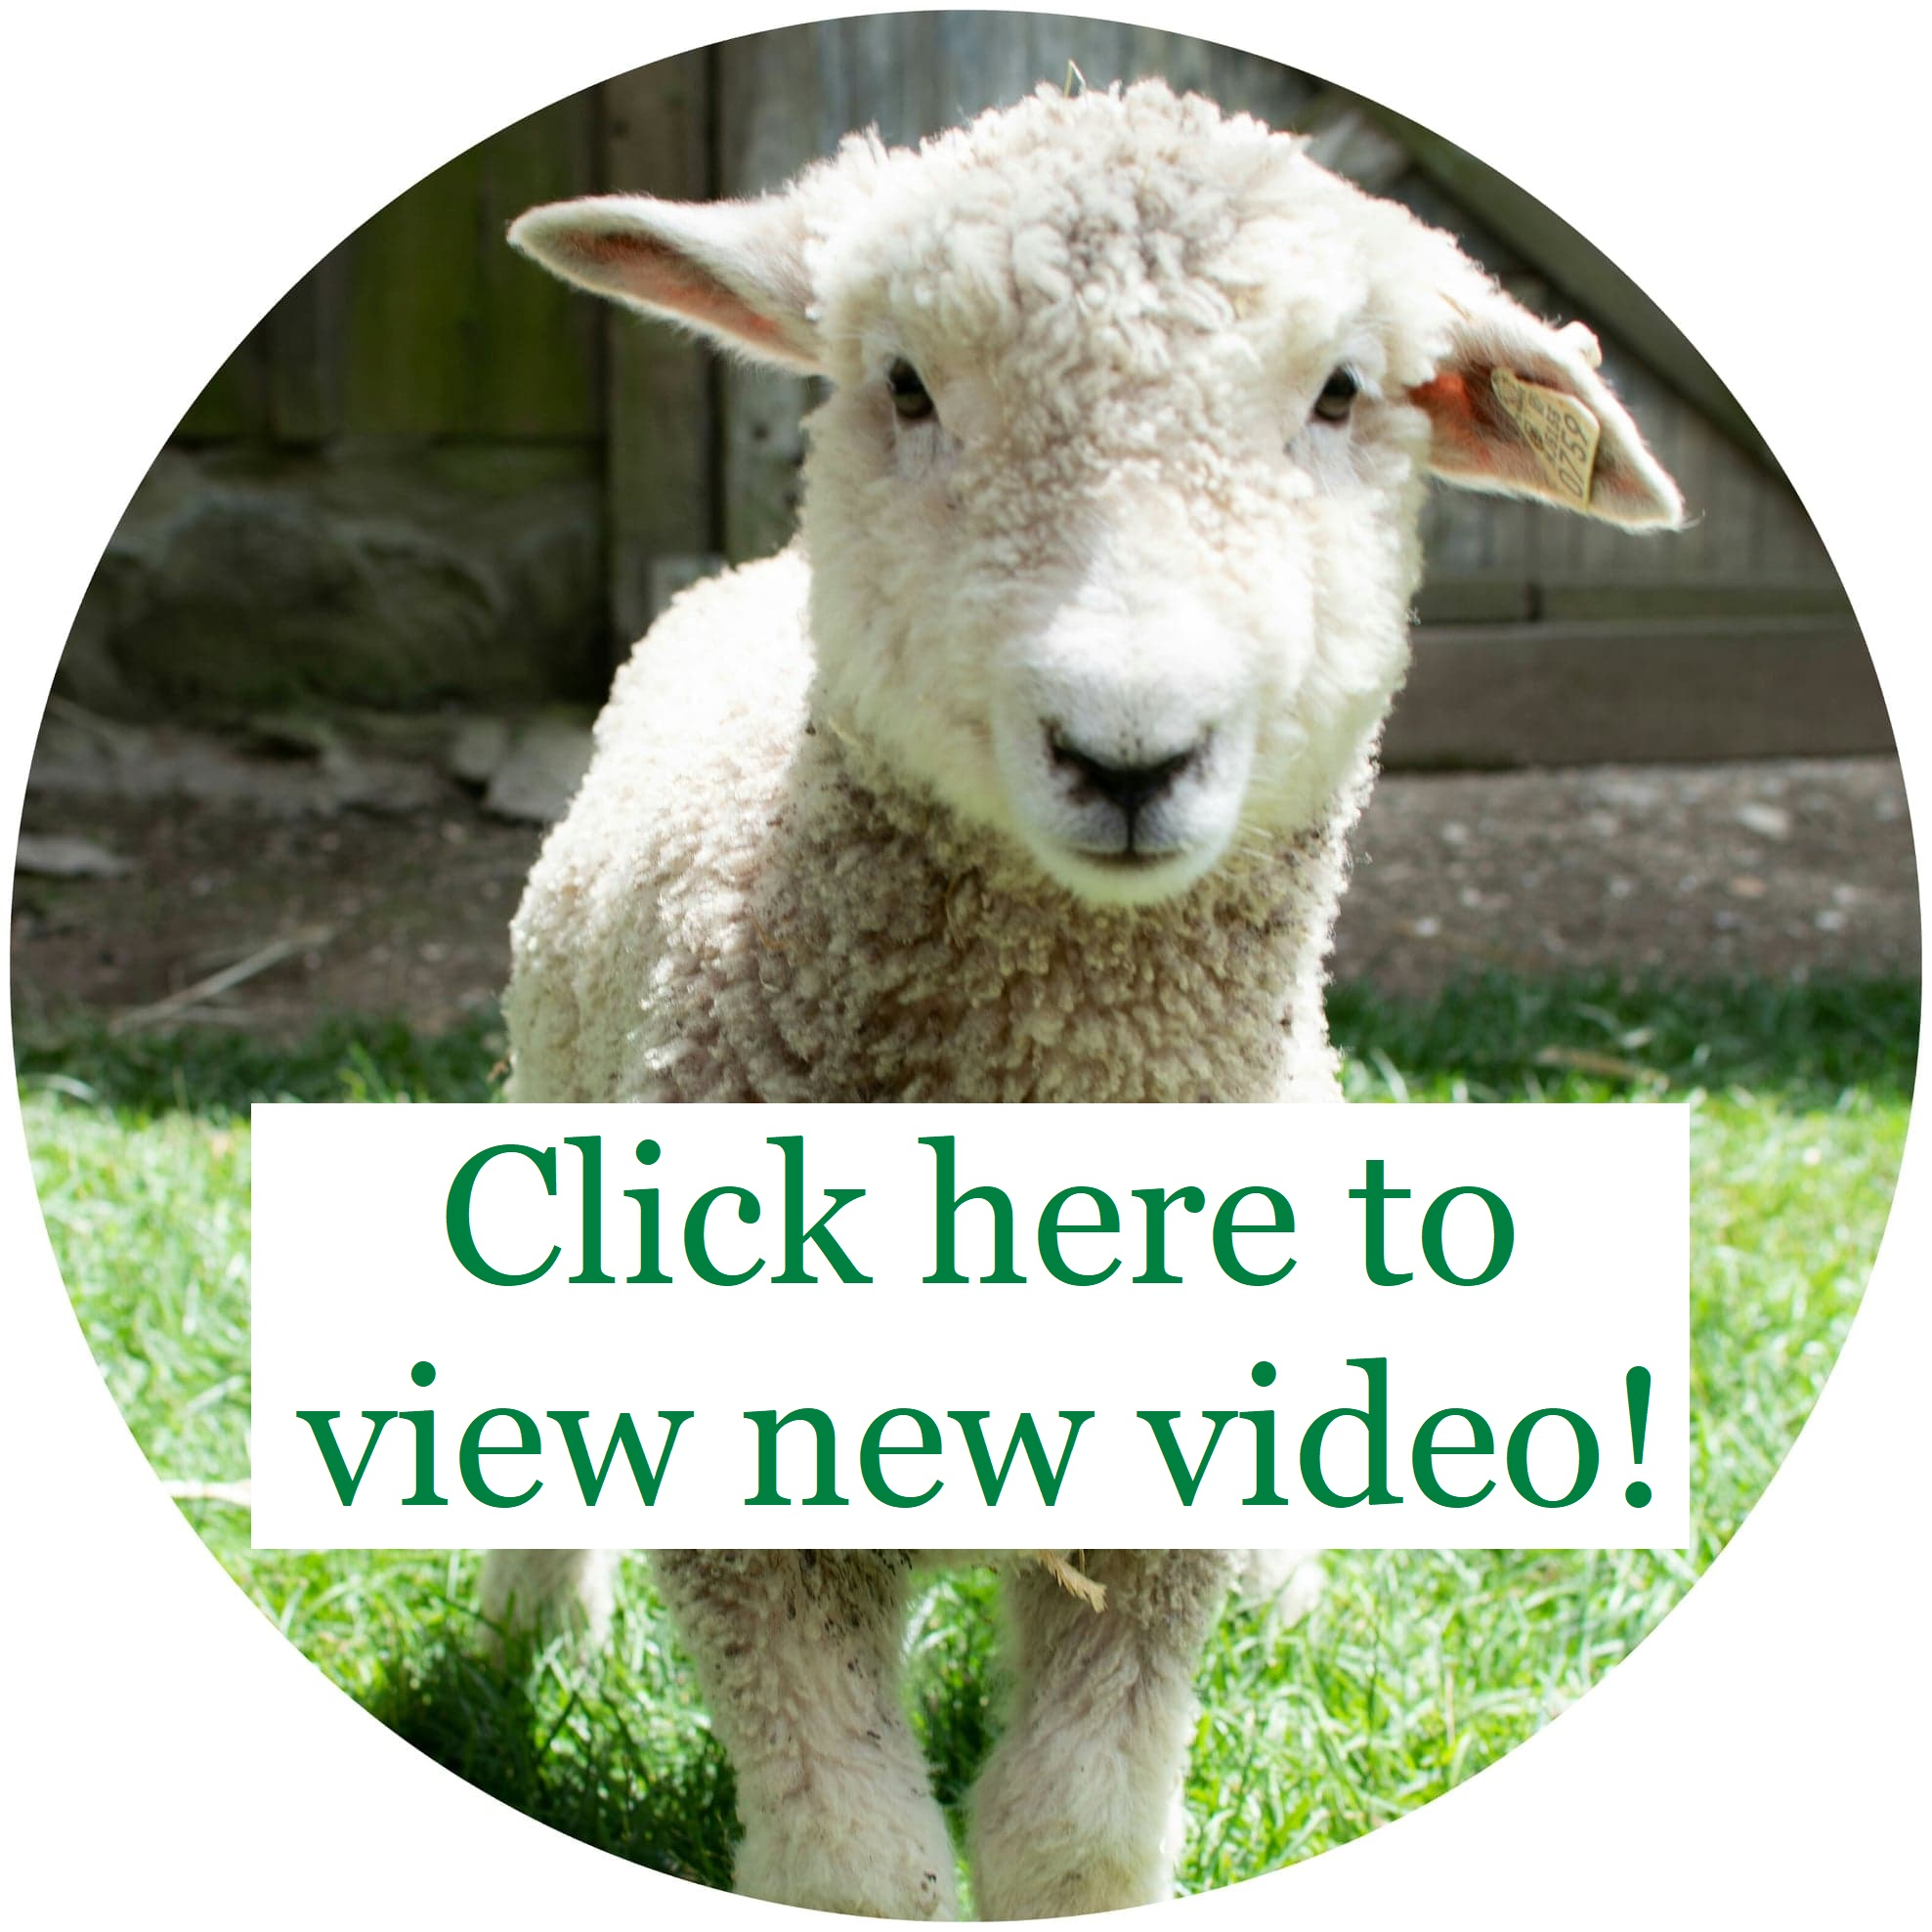 Safe Haven Farm Sanctuary – Dedicated to compassion toward